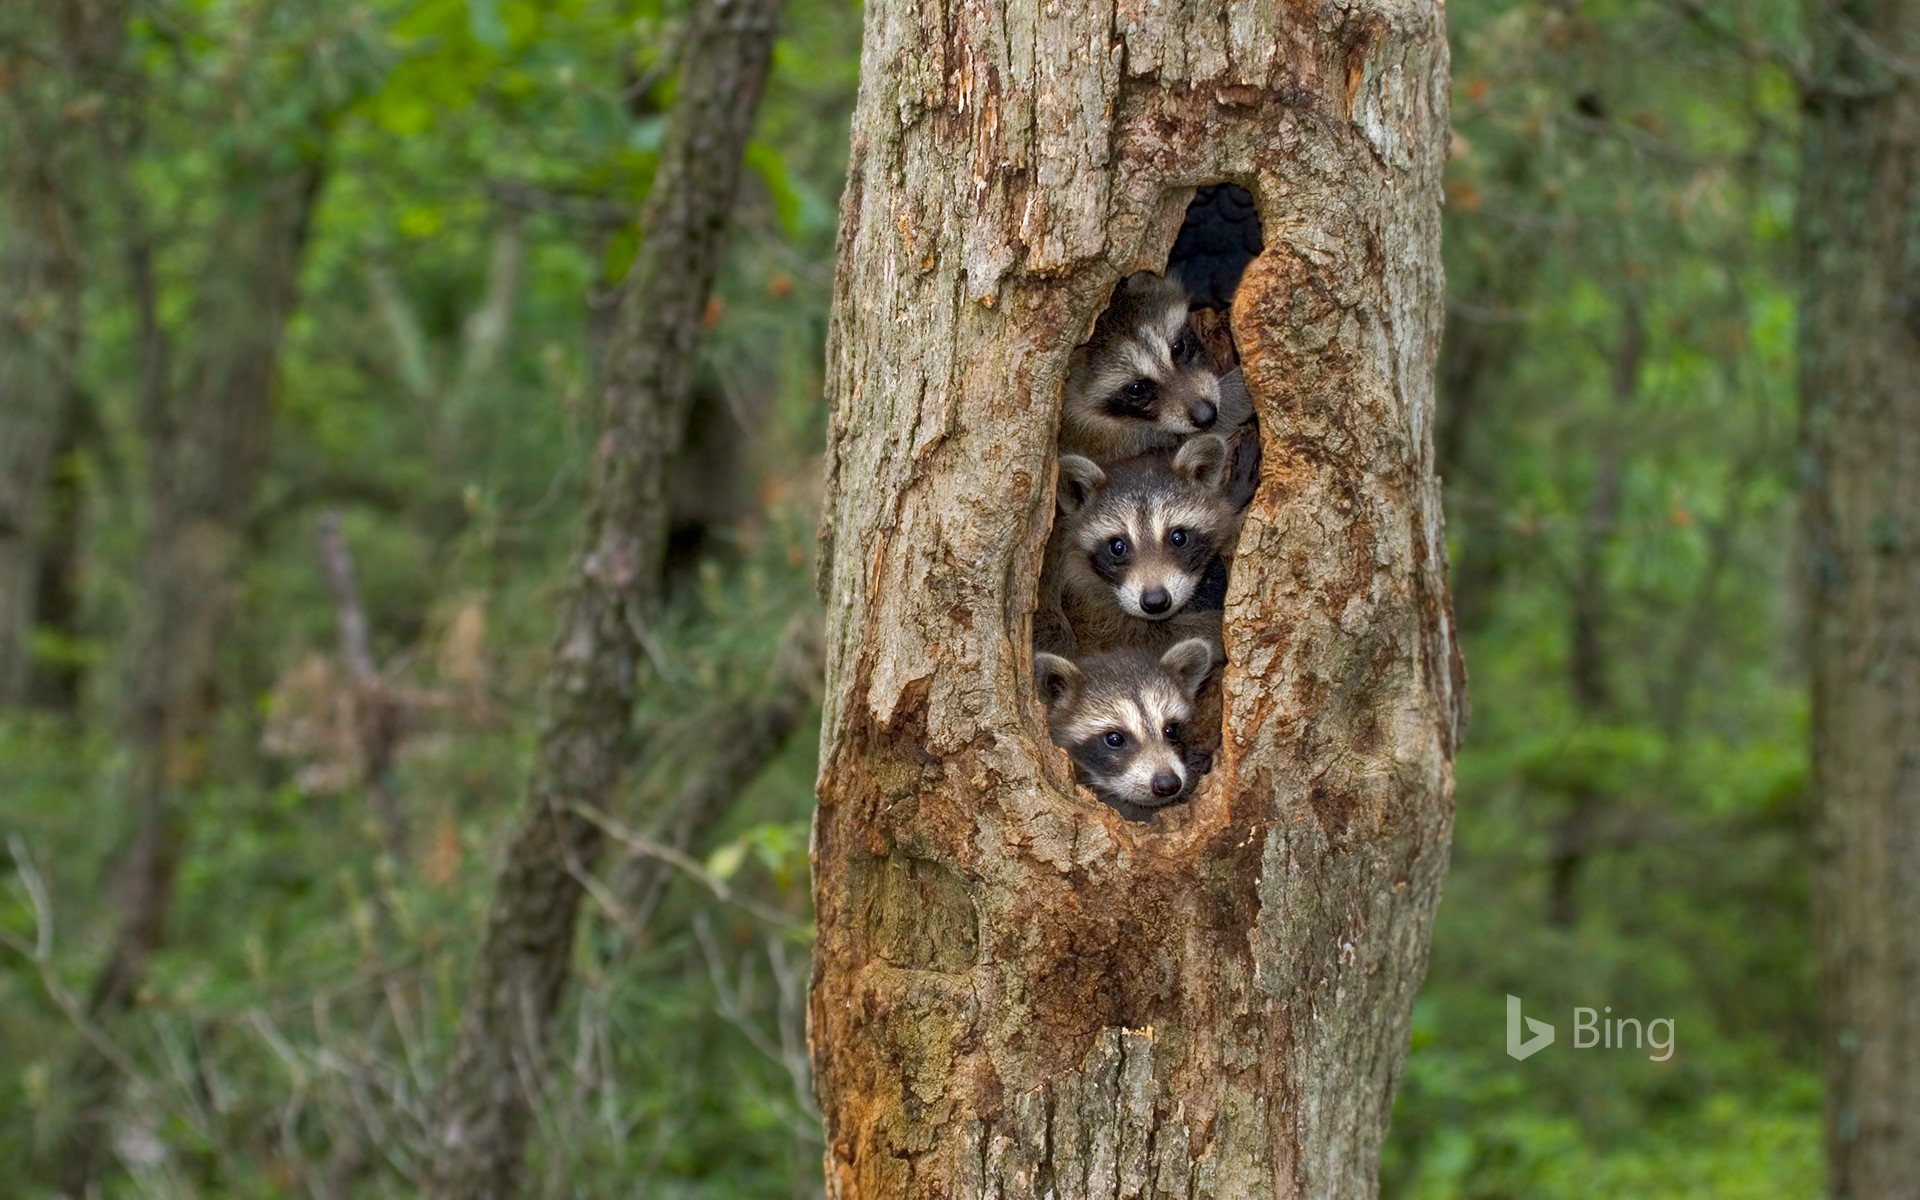 Raccoons huddled together in a tree